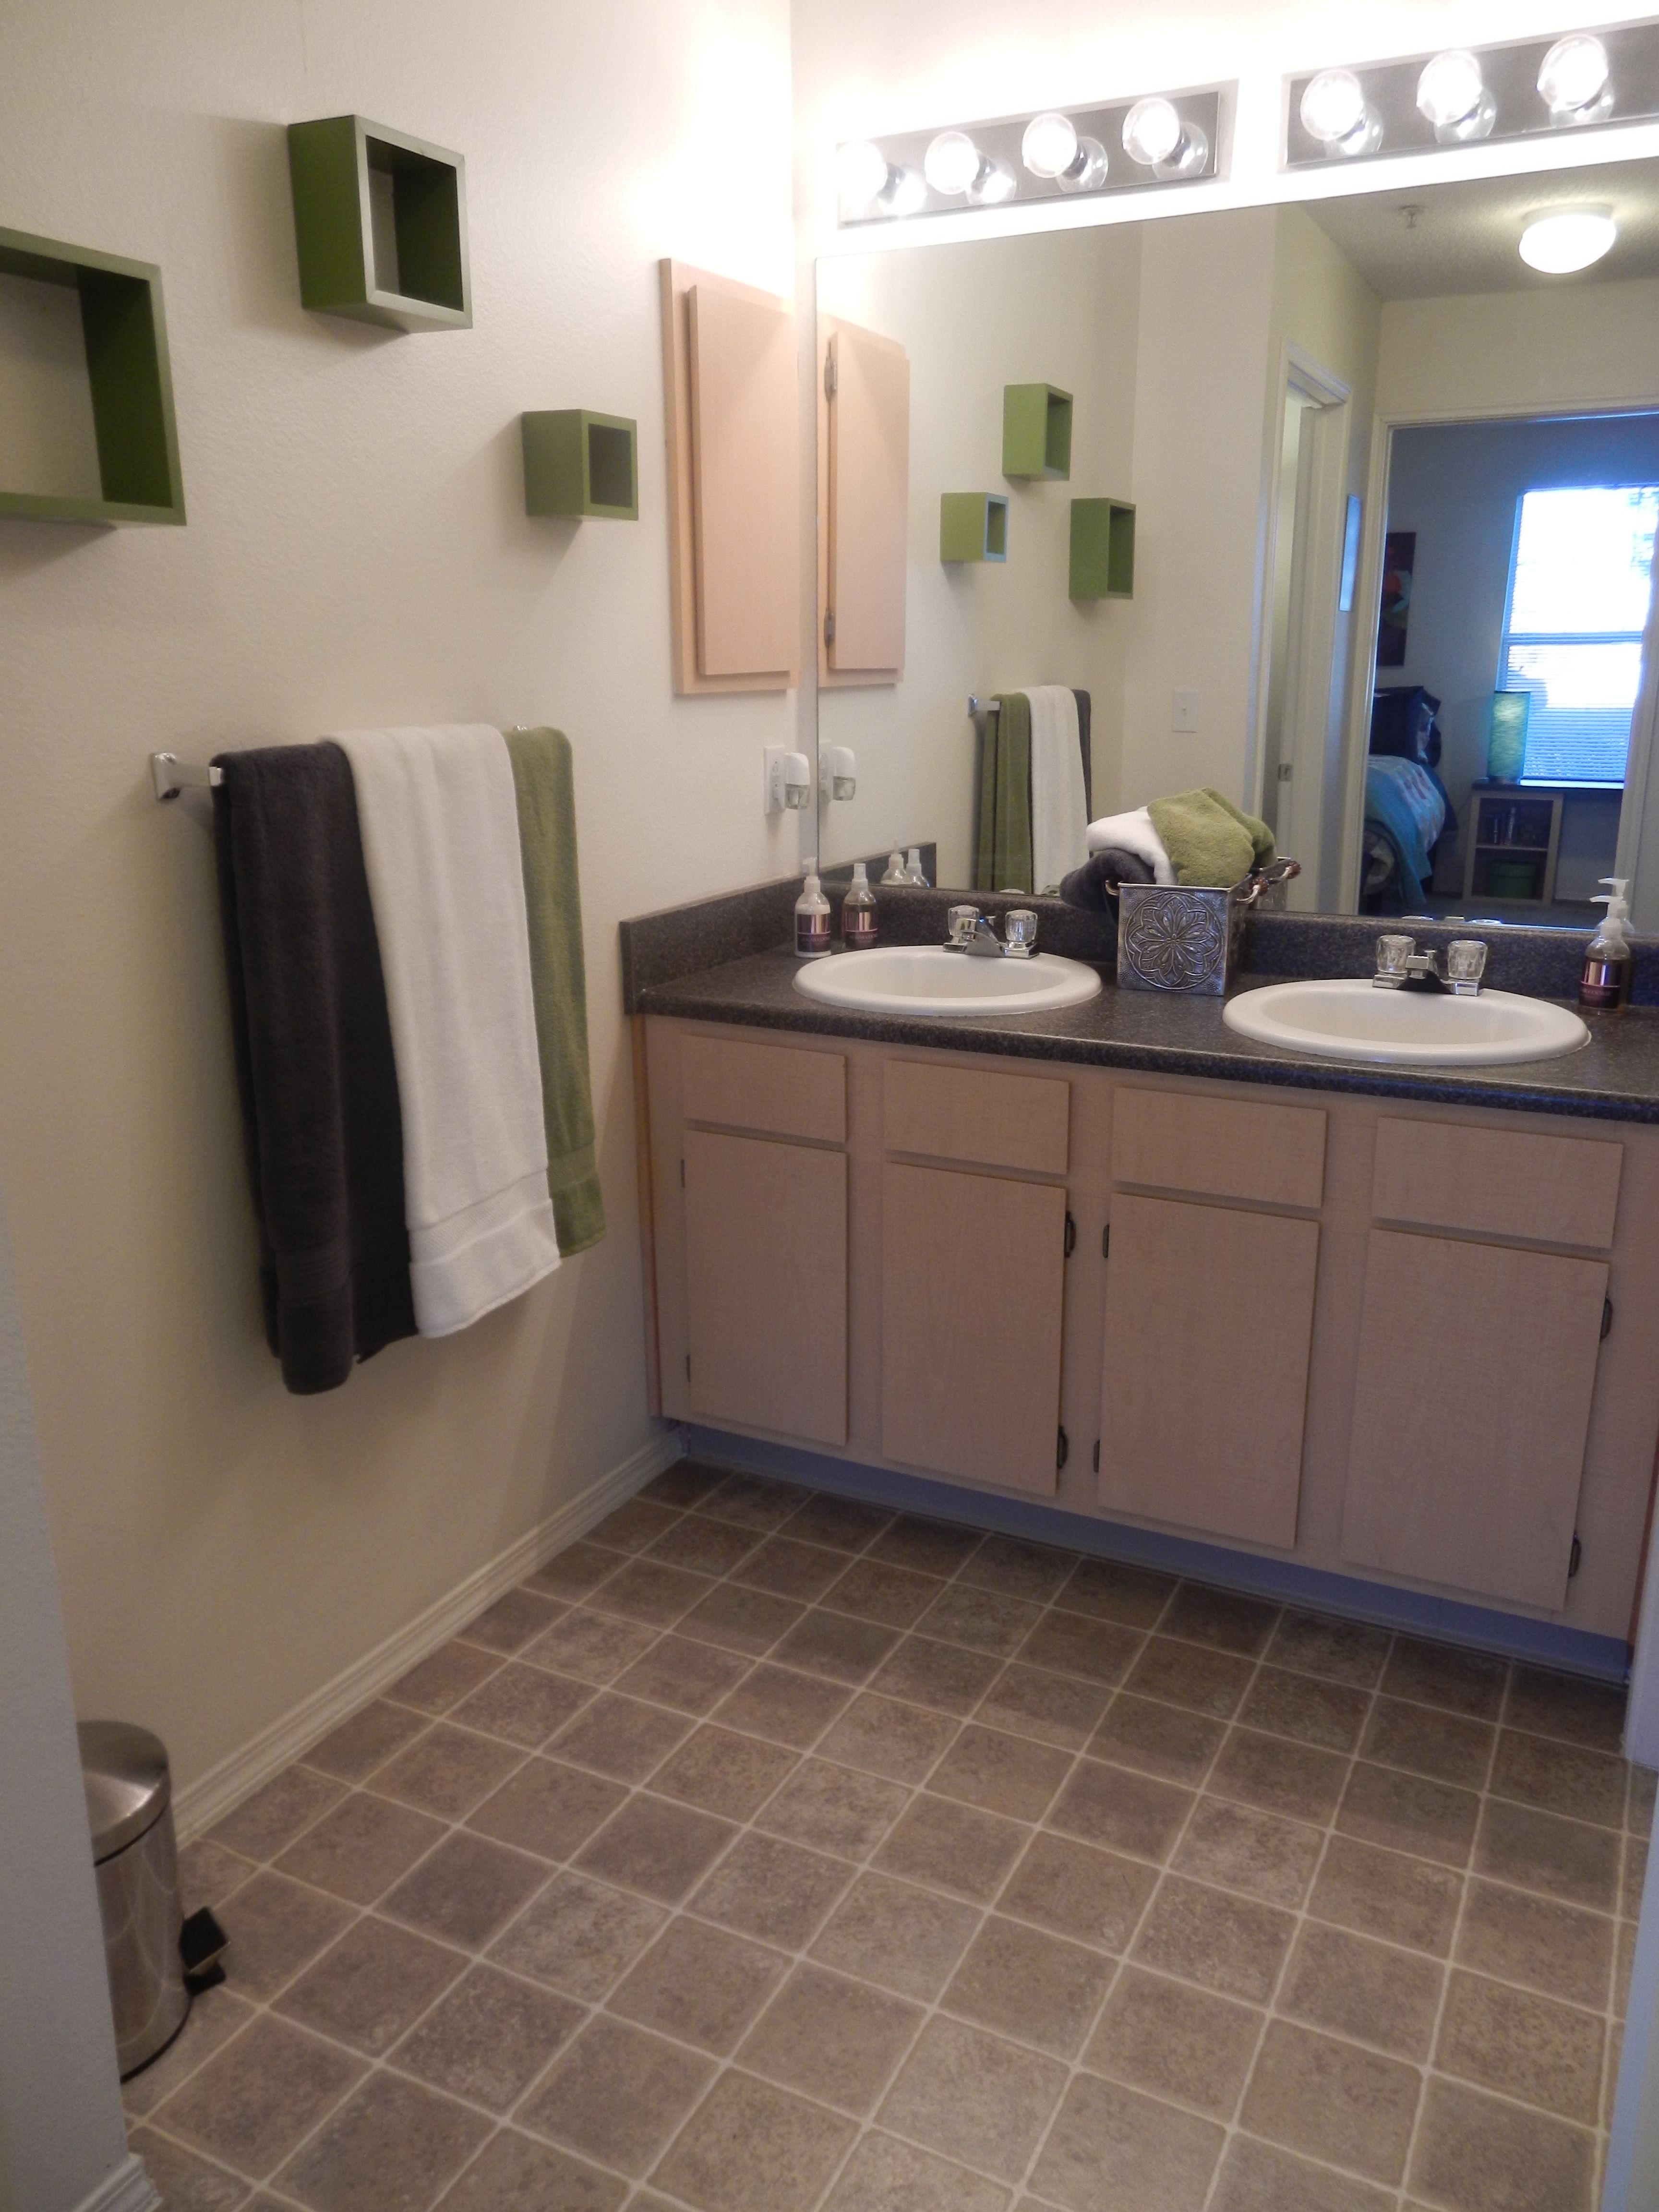 Spacious Shared Bathroom At Ram S Pointe Apartments In Fort Collins Co Shared Bathroom 4 Bedroom Apartments Fort Collins